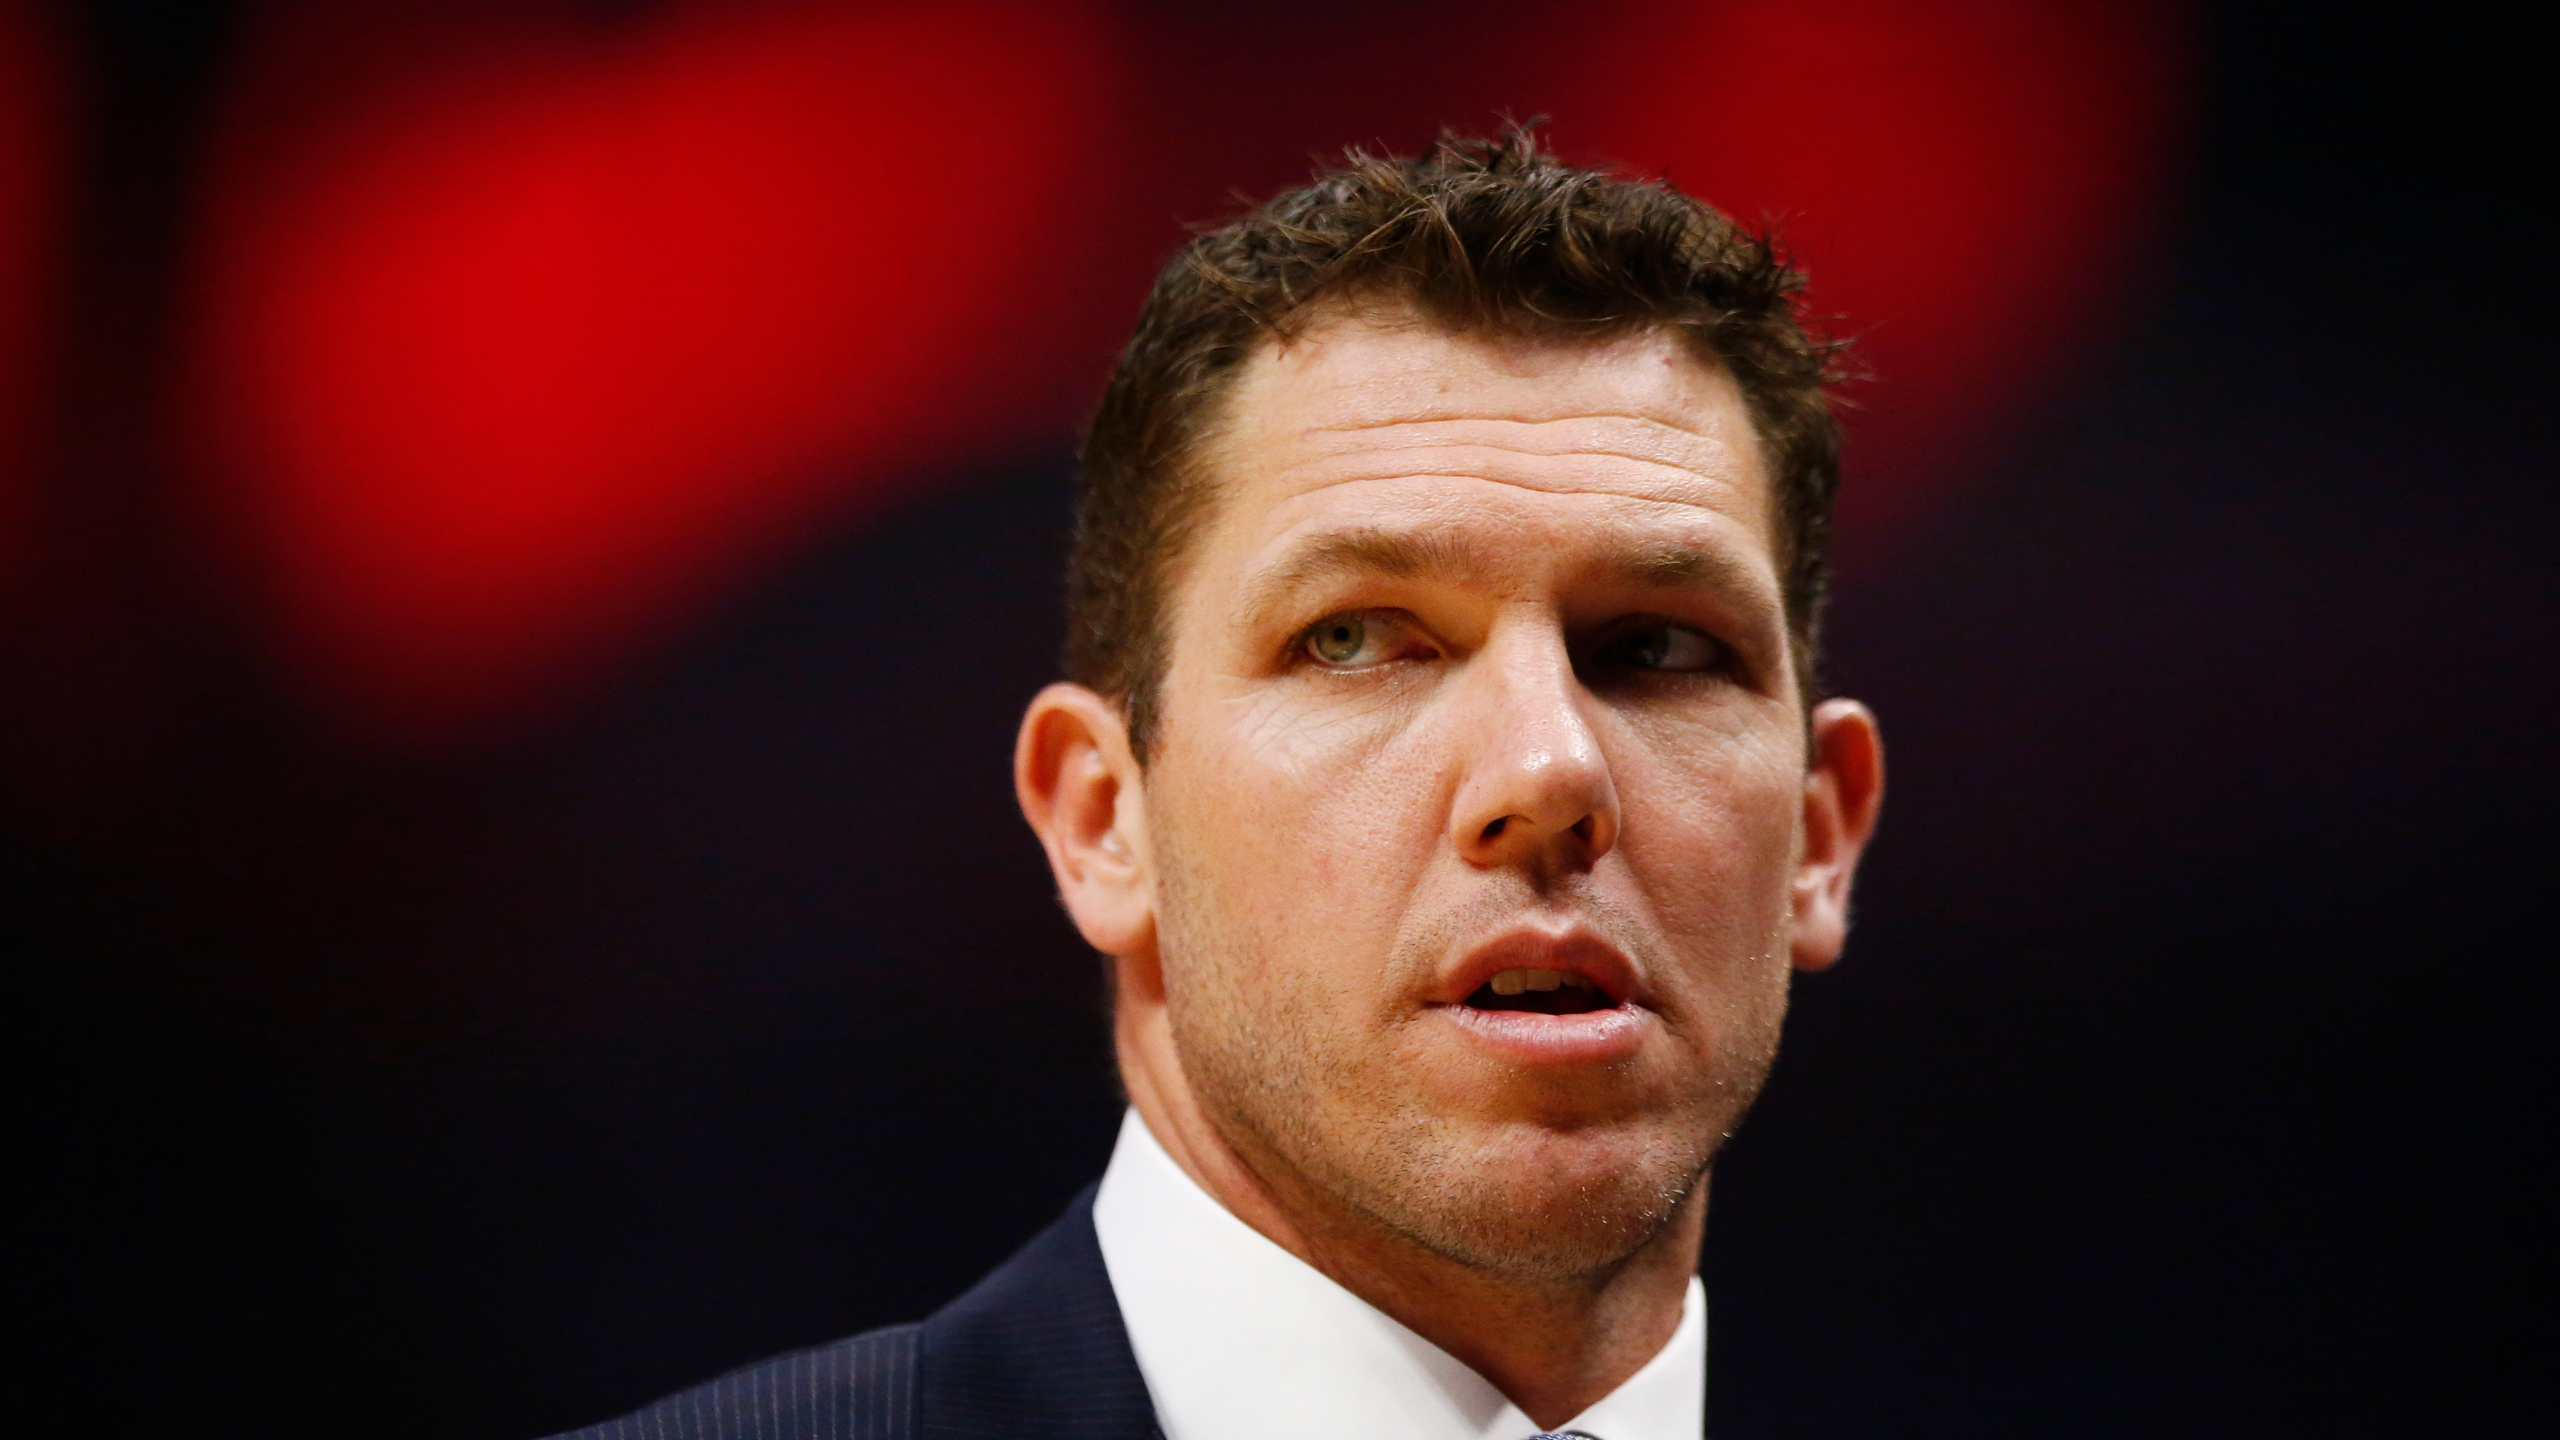 Los Angeles Lakers coach Luke Walton looks on during the first half of the game against the L.A. Clippers at Staples Center on April 5, 2019. (Credit: Yong Teck Lim / Getty Images)